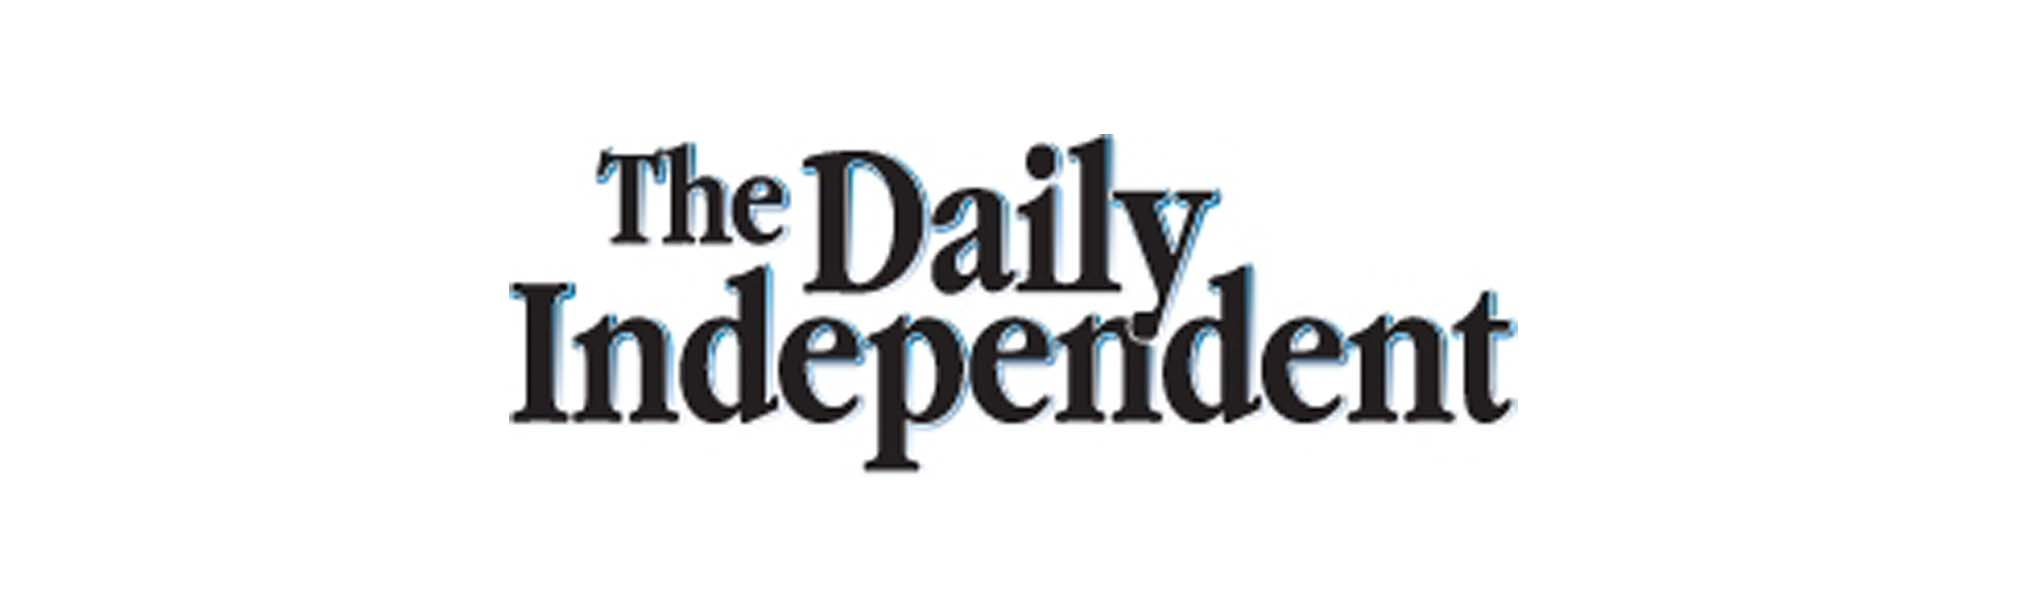 Daily Independent.jpg